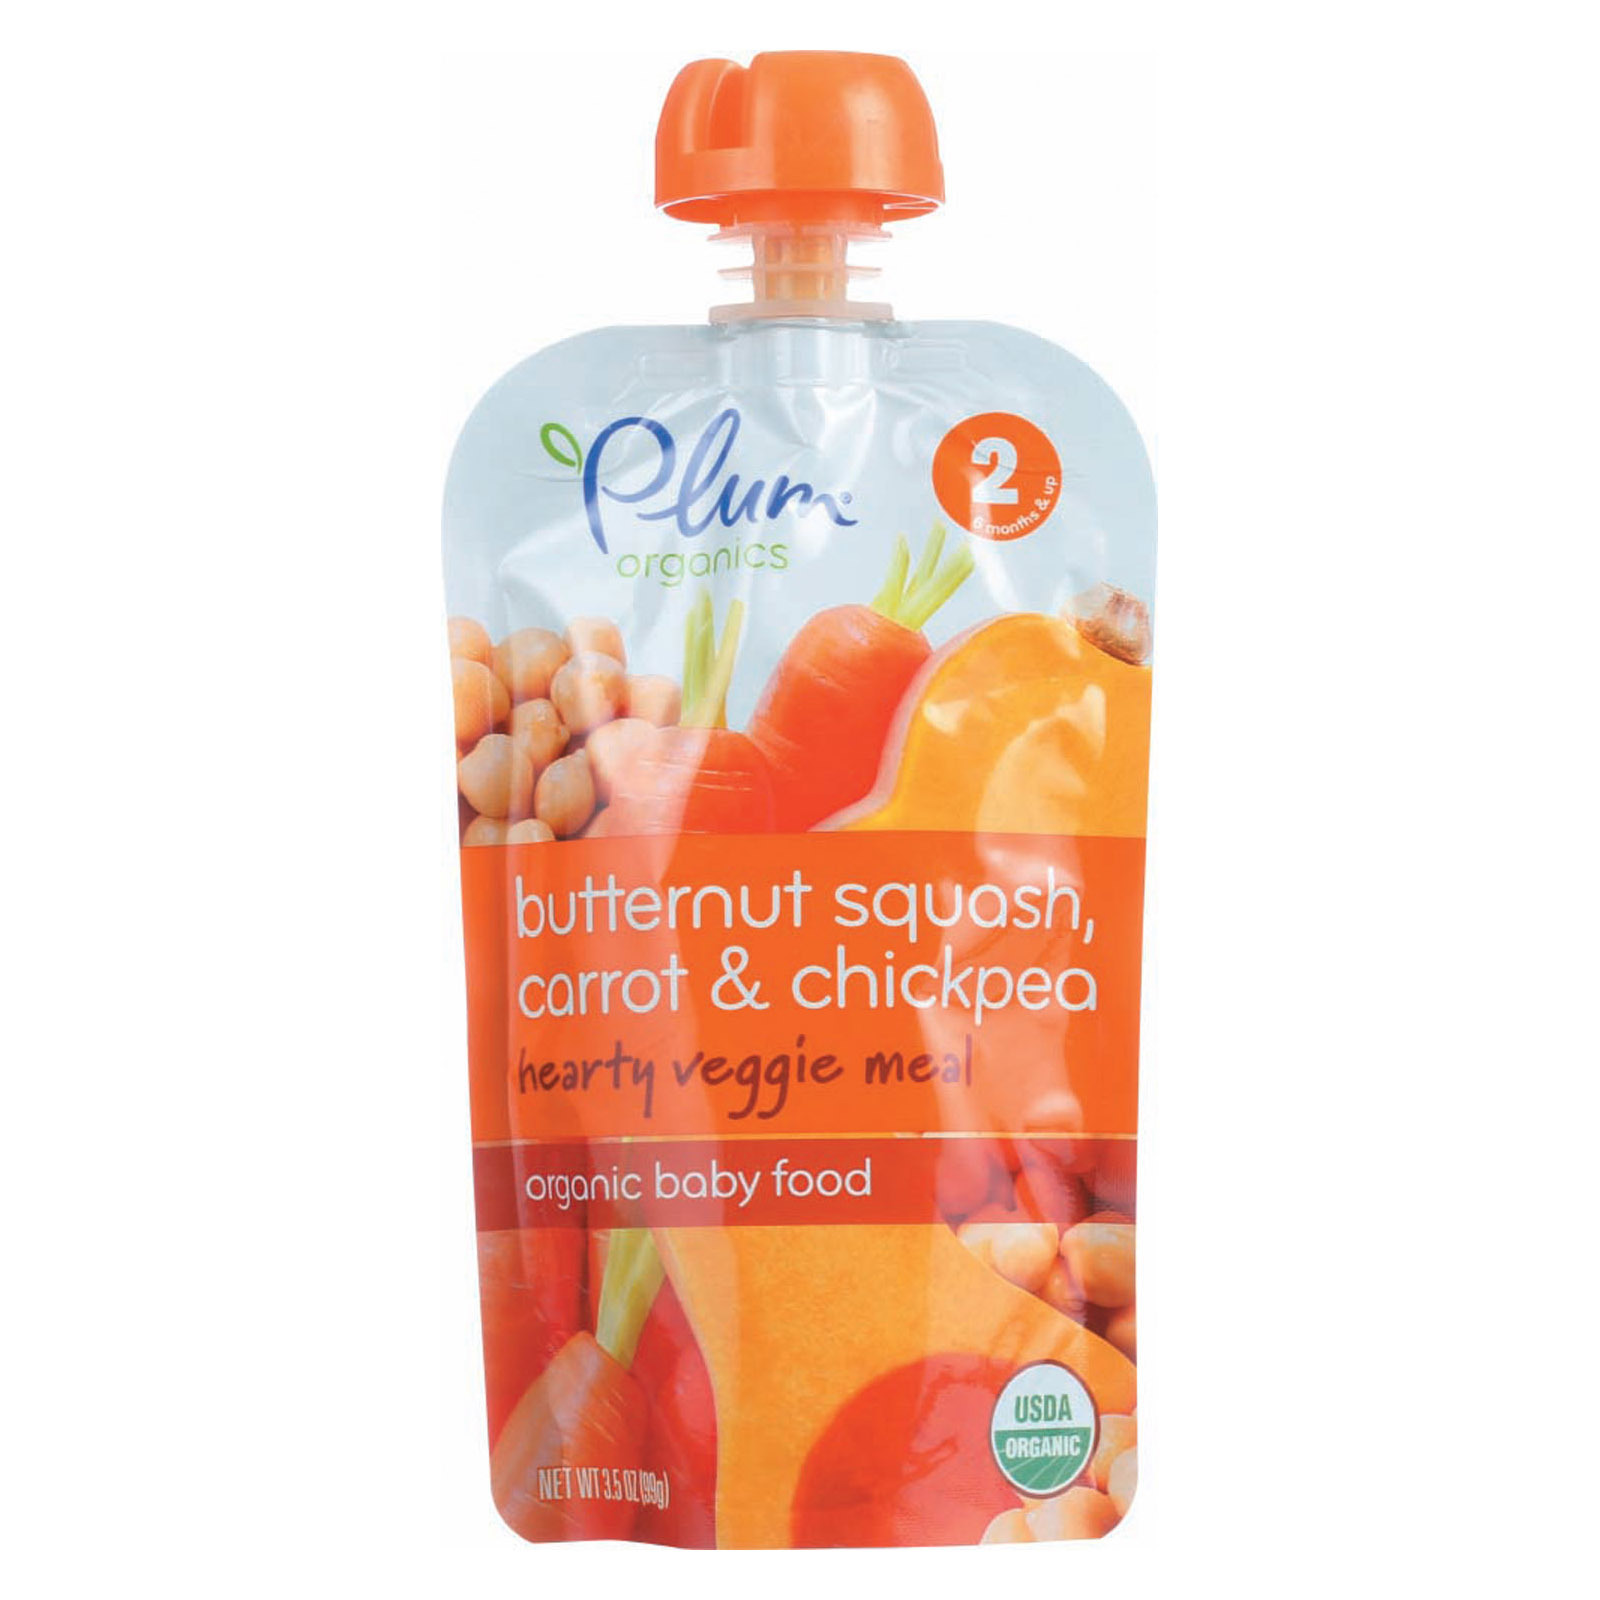 Plum Organics Second Blends Hearty Veggie Meal - Butternut Squash, Carrot and Chickpea - Case of 6 - 3.5 oz.